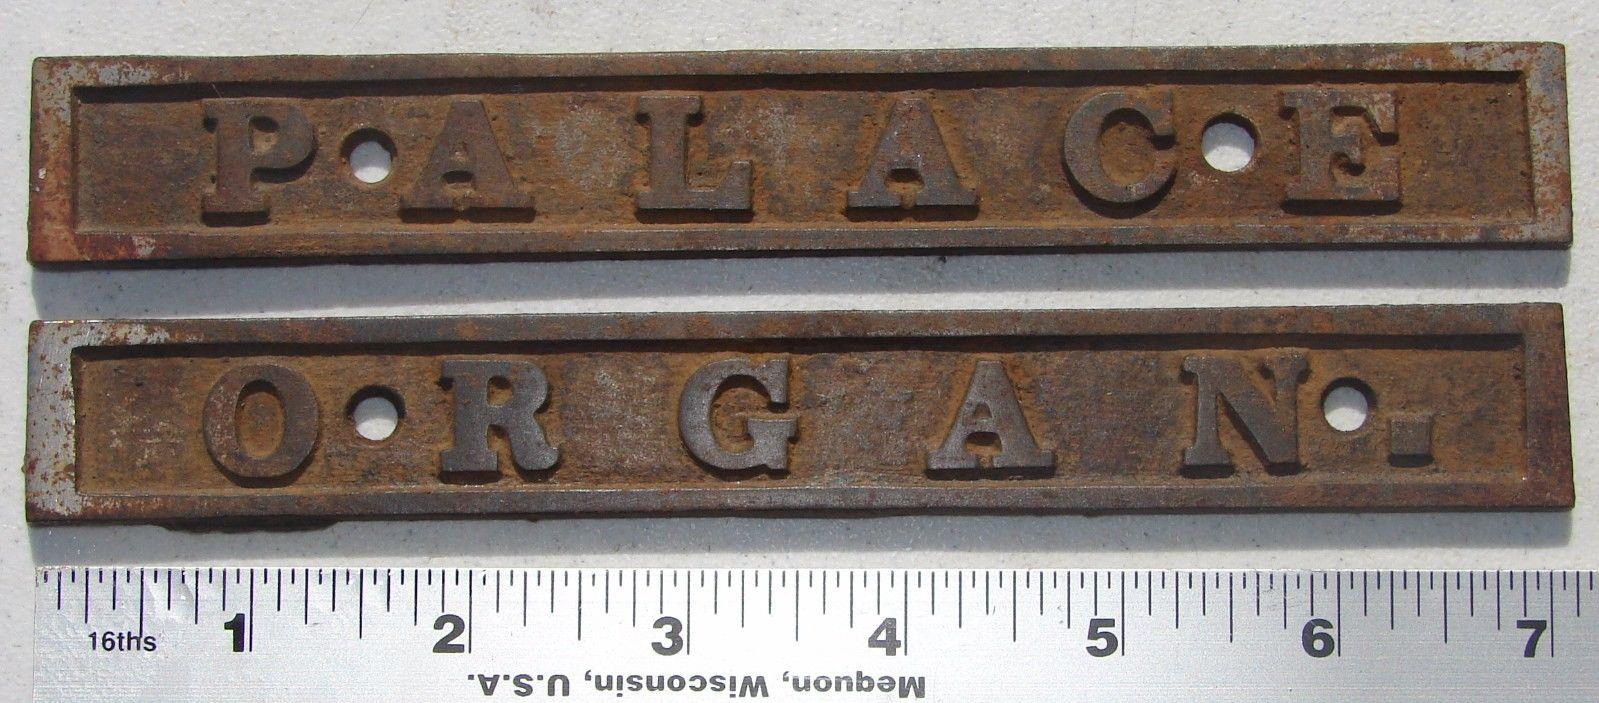 Palace Organ Antique Pump Organ Foot Pedal Name Plate Cast Iron Hardware Used